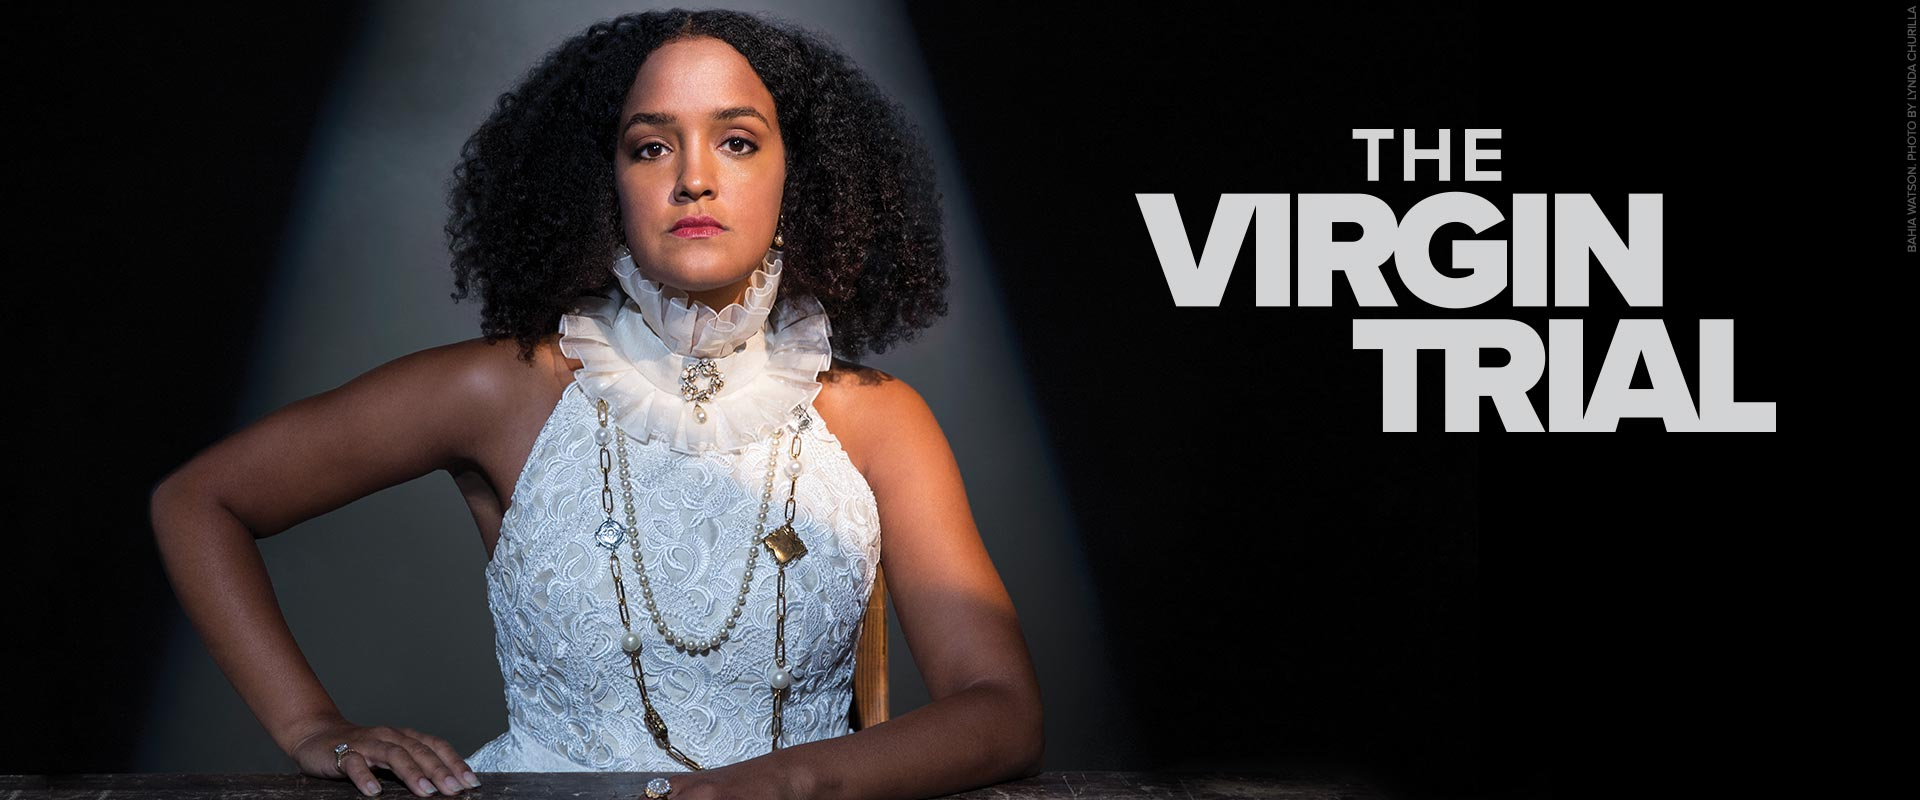 Publicity image from The Virgin Trial featuring Bahia Watson